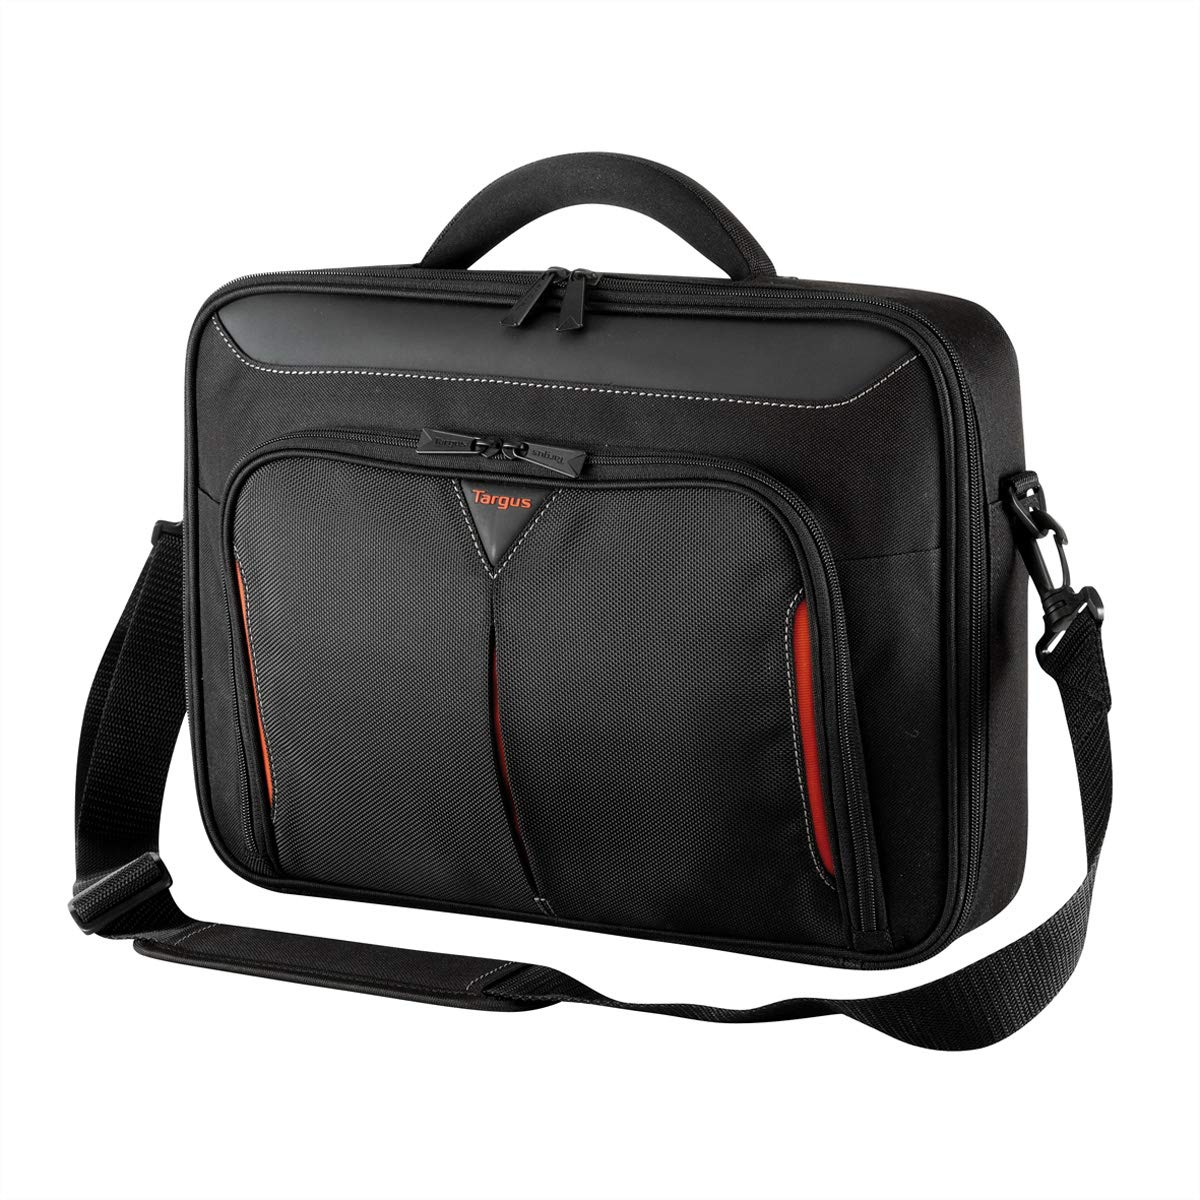 8a35e0047a7 Targus Classic Clamshell 15.6-Inch Laptop Case, Black/Red (CN415EU):  Amazon.co.uk: Computers & Accessories